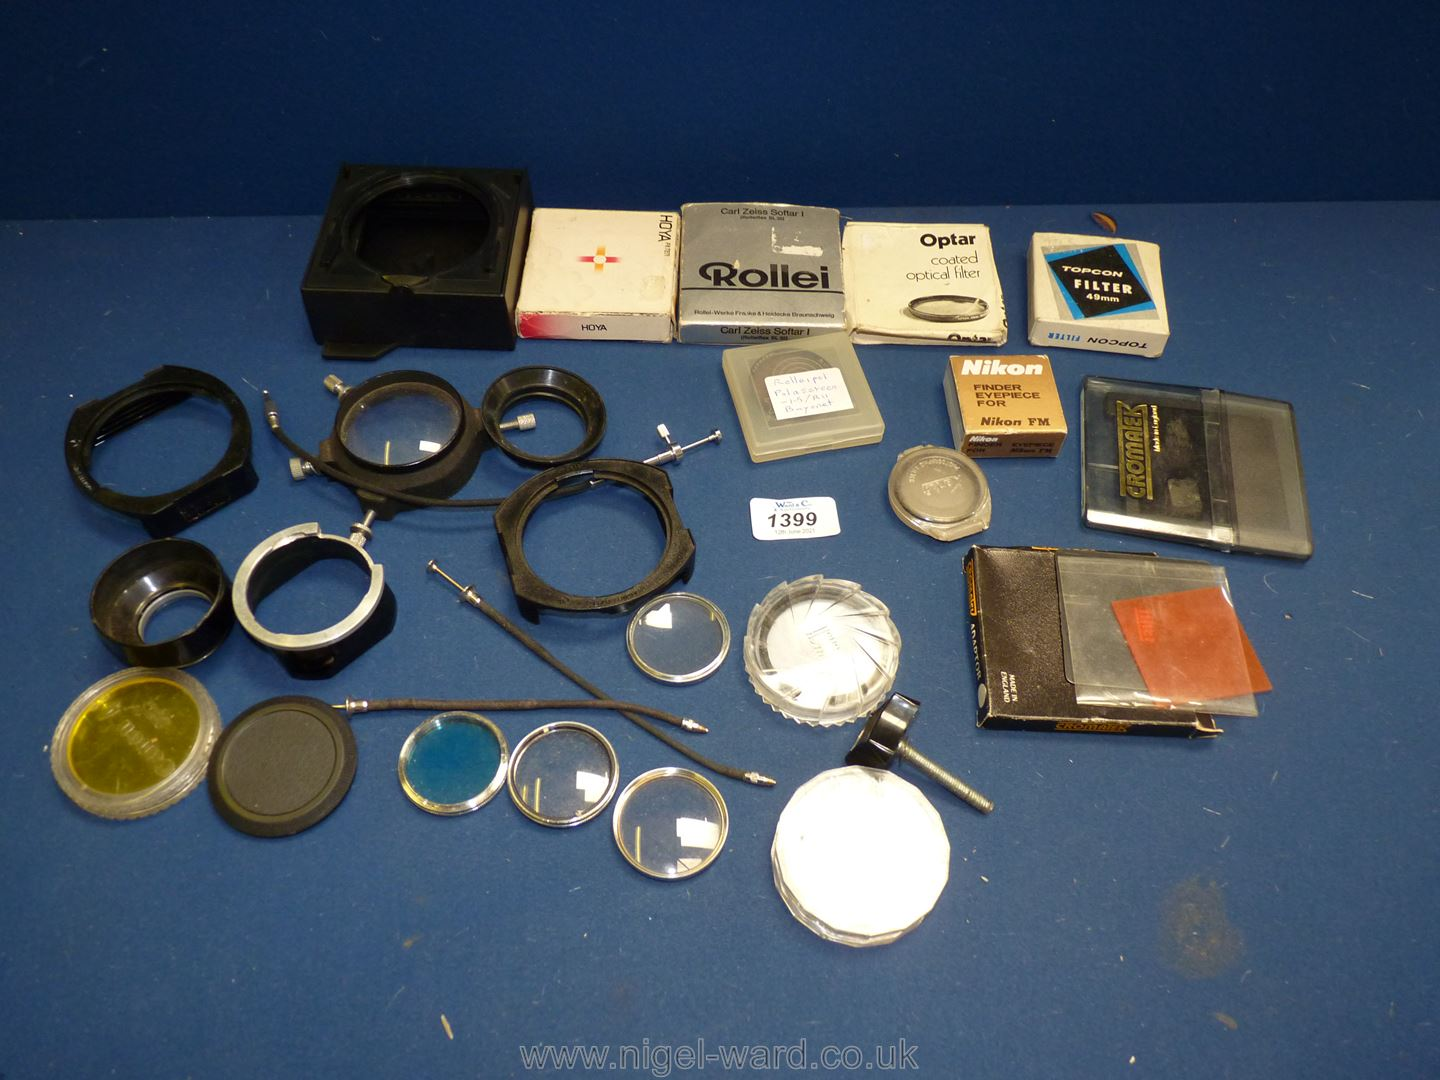 A quantity of camera filters including Rolleipol, Polarscreen, Zeiss Softer I, Cenei Plan 40.